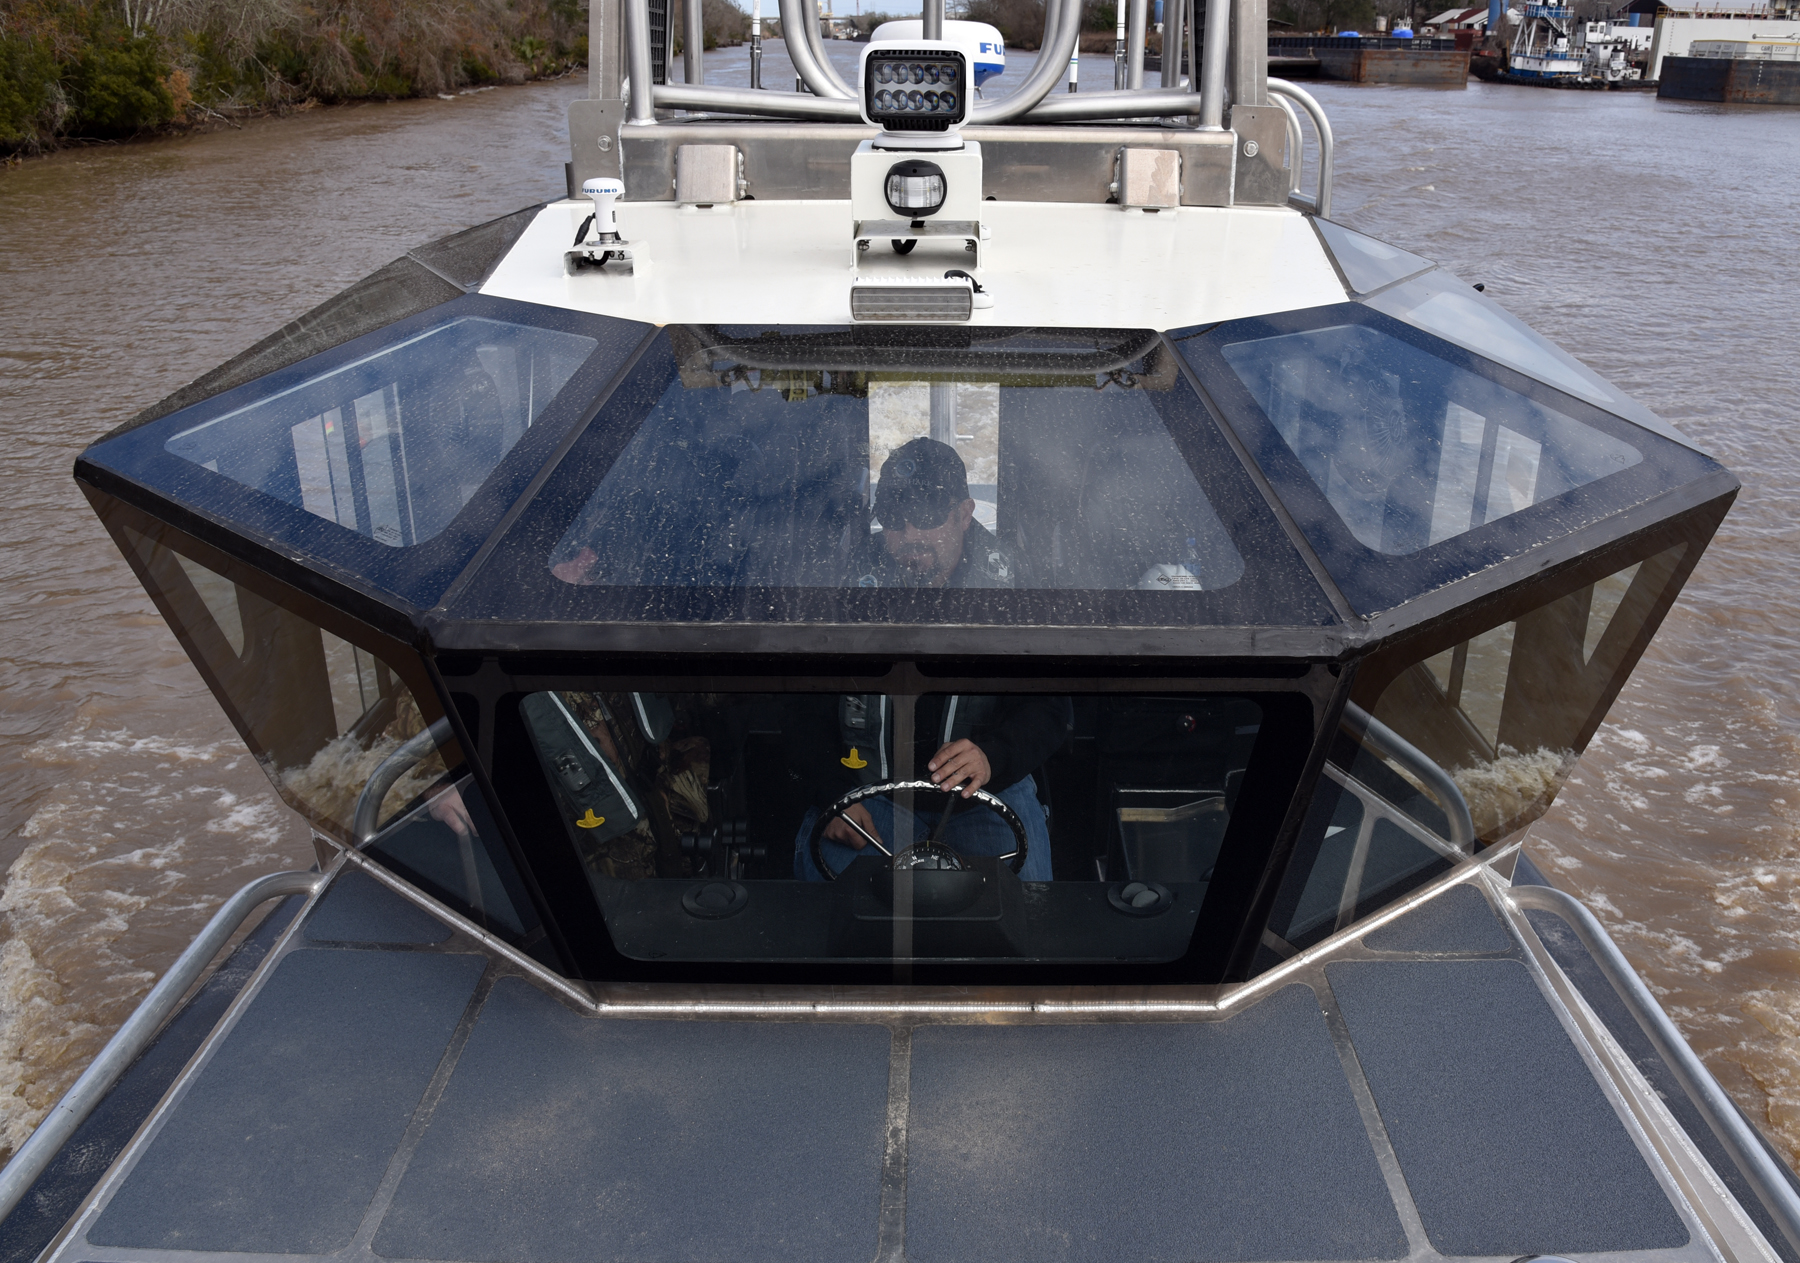 Boat Pilothouse Designs on boat center console designs, boat cabin designs, boat custom designs, boat trailers designs, boat launch designs, boat deck designs, boat galley designs, boat sail designs,